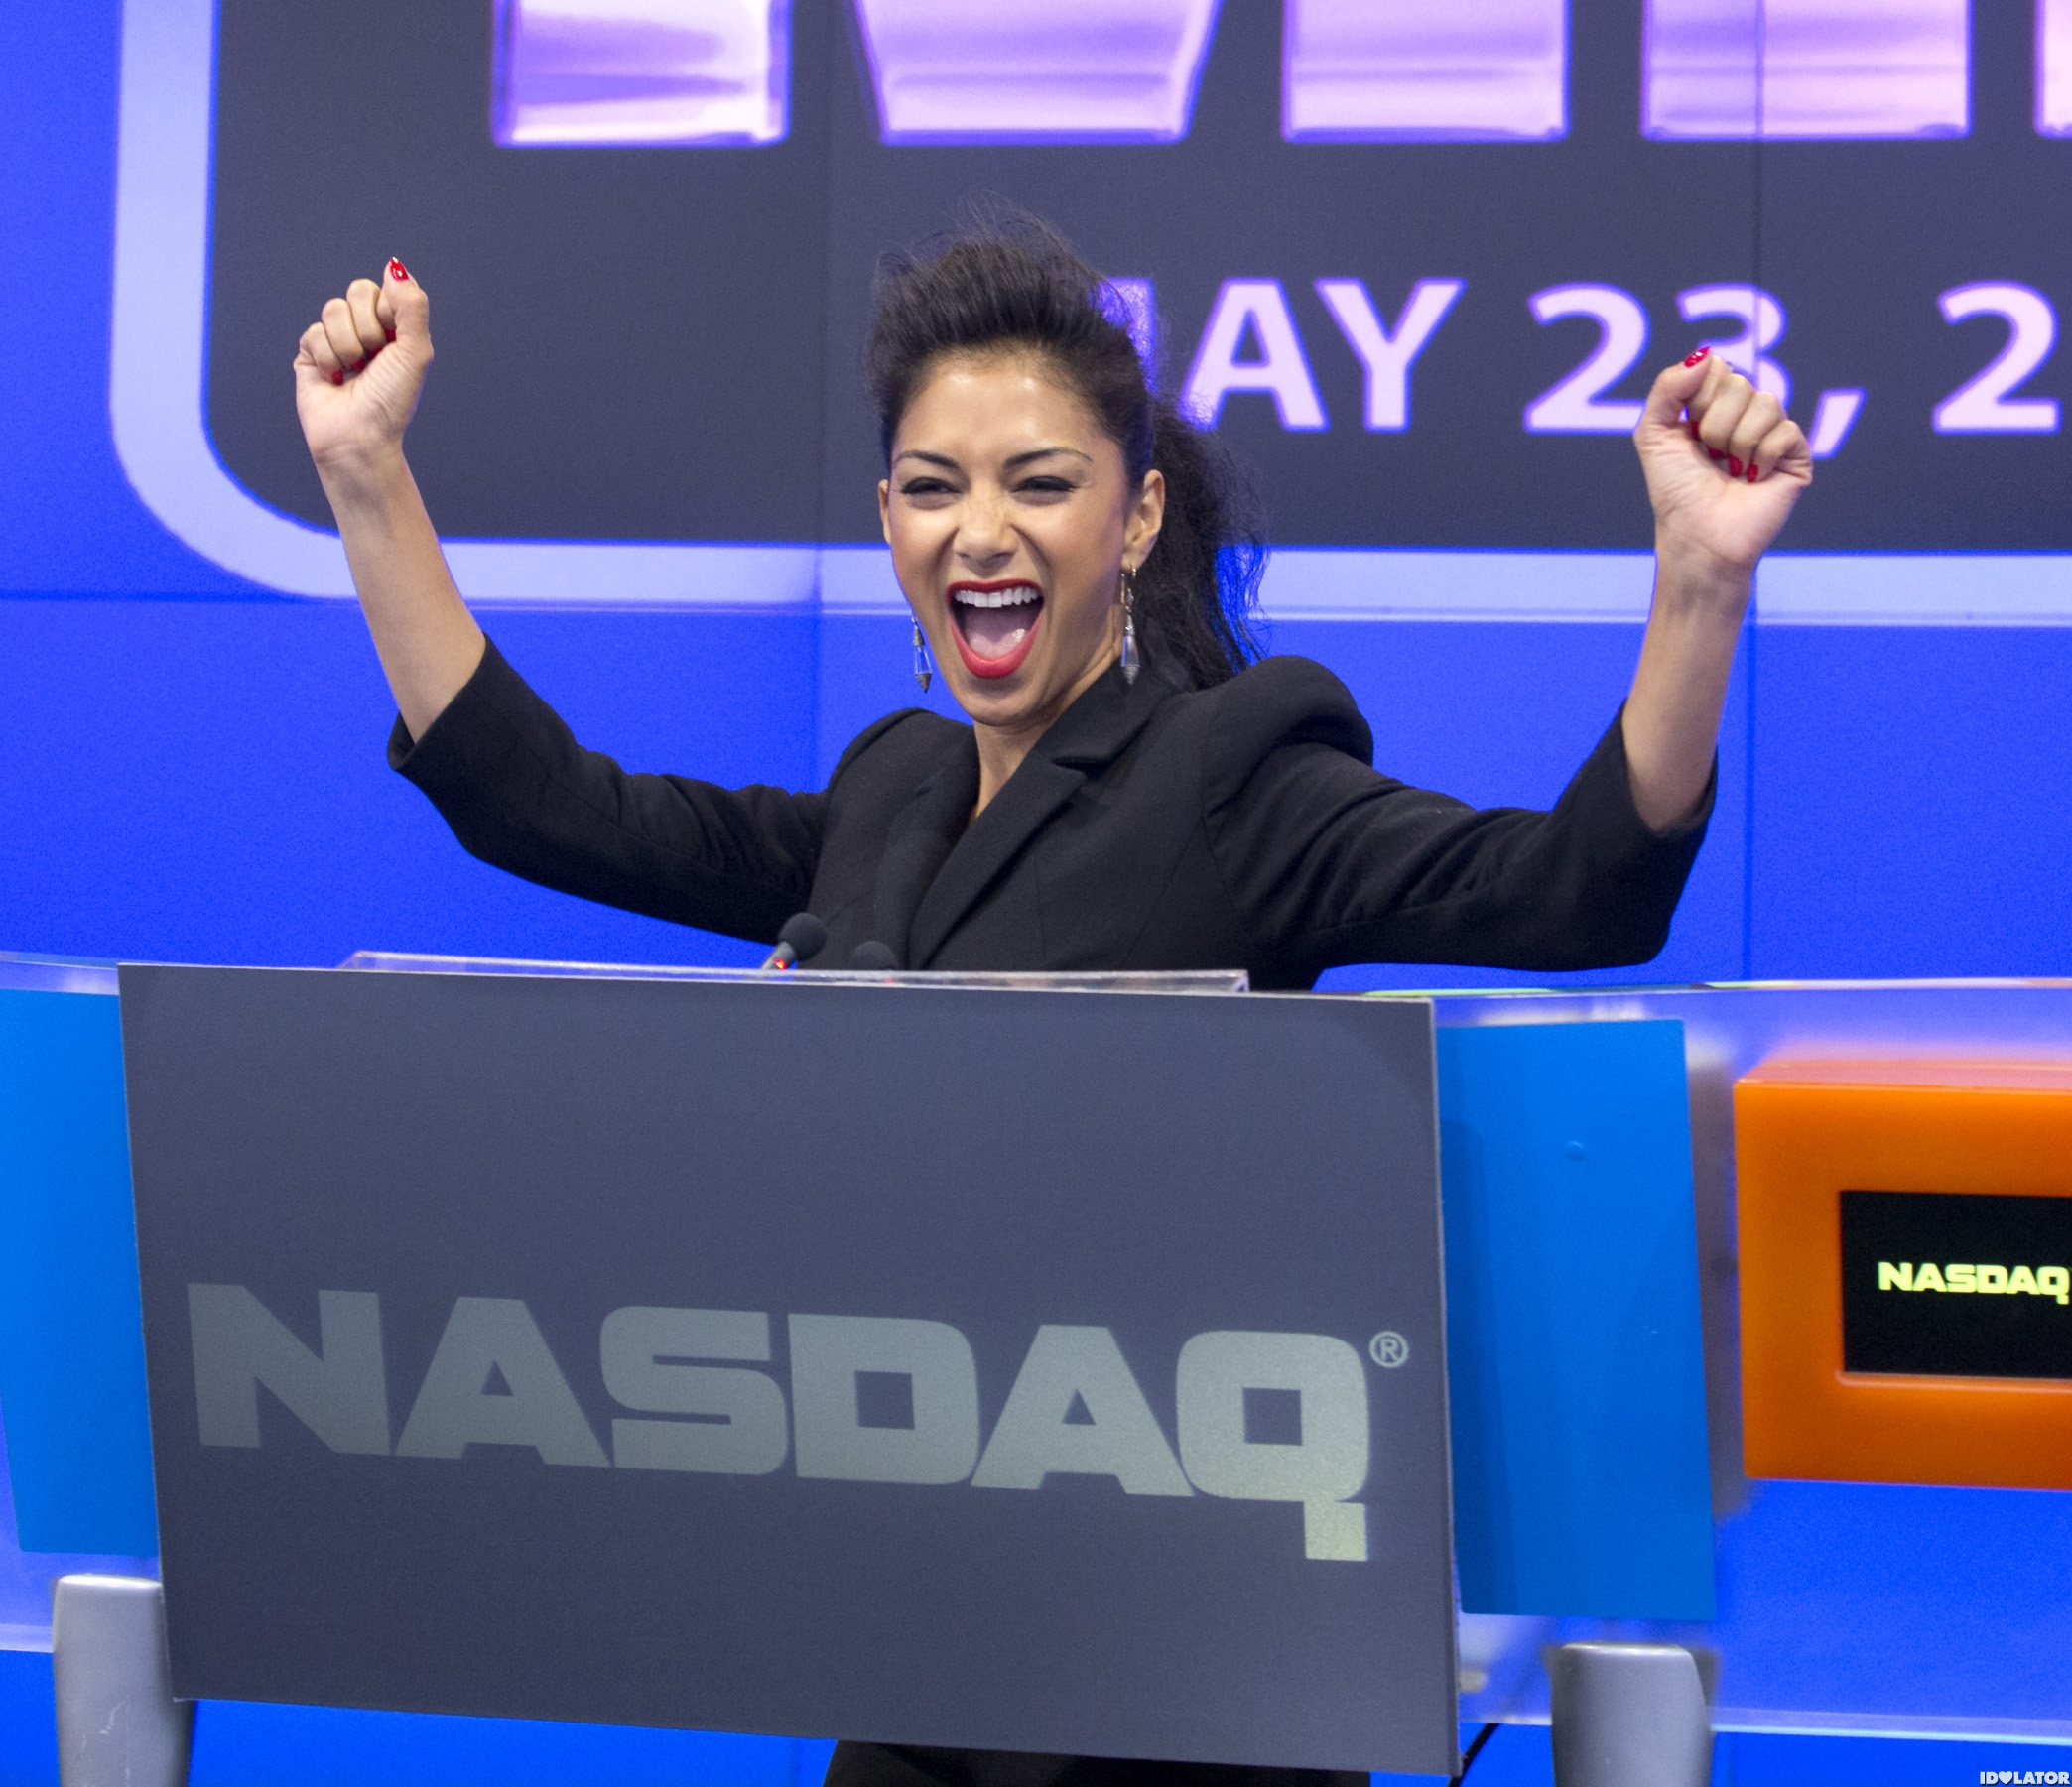 Nicole Scherzinger Rings In The Opening Bell On Wall Street